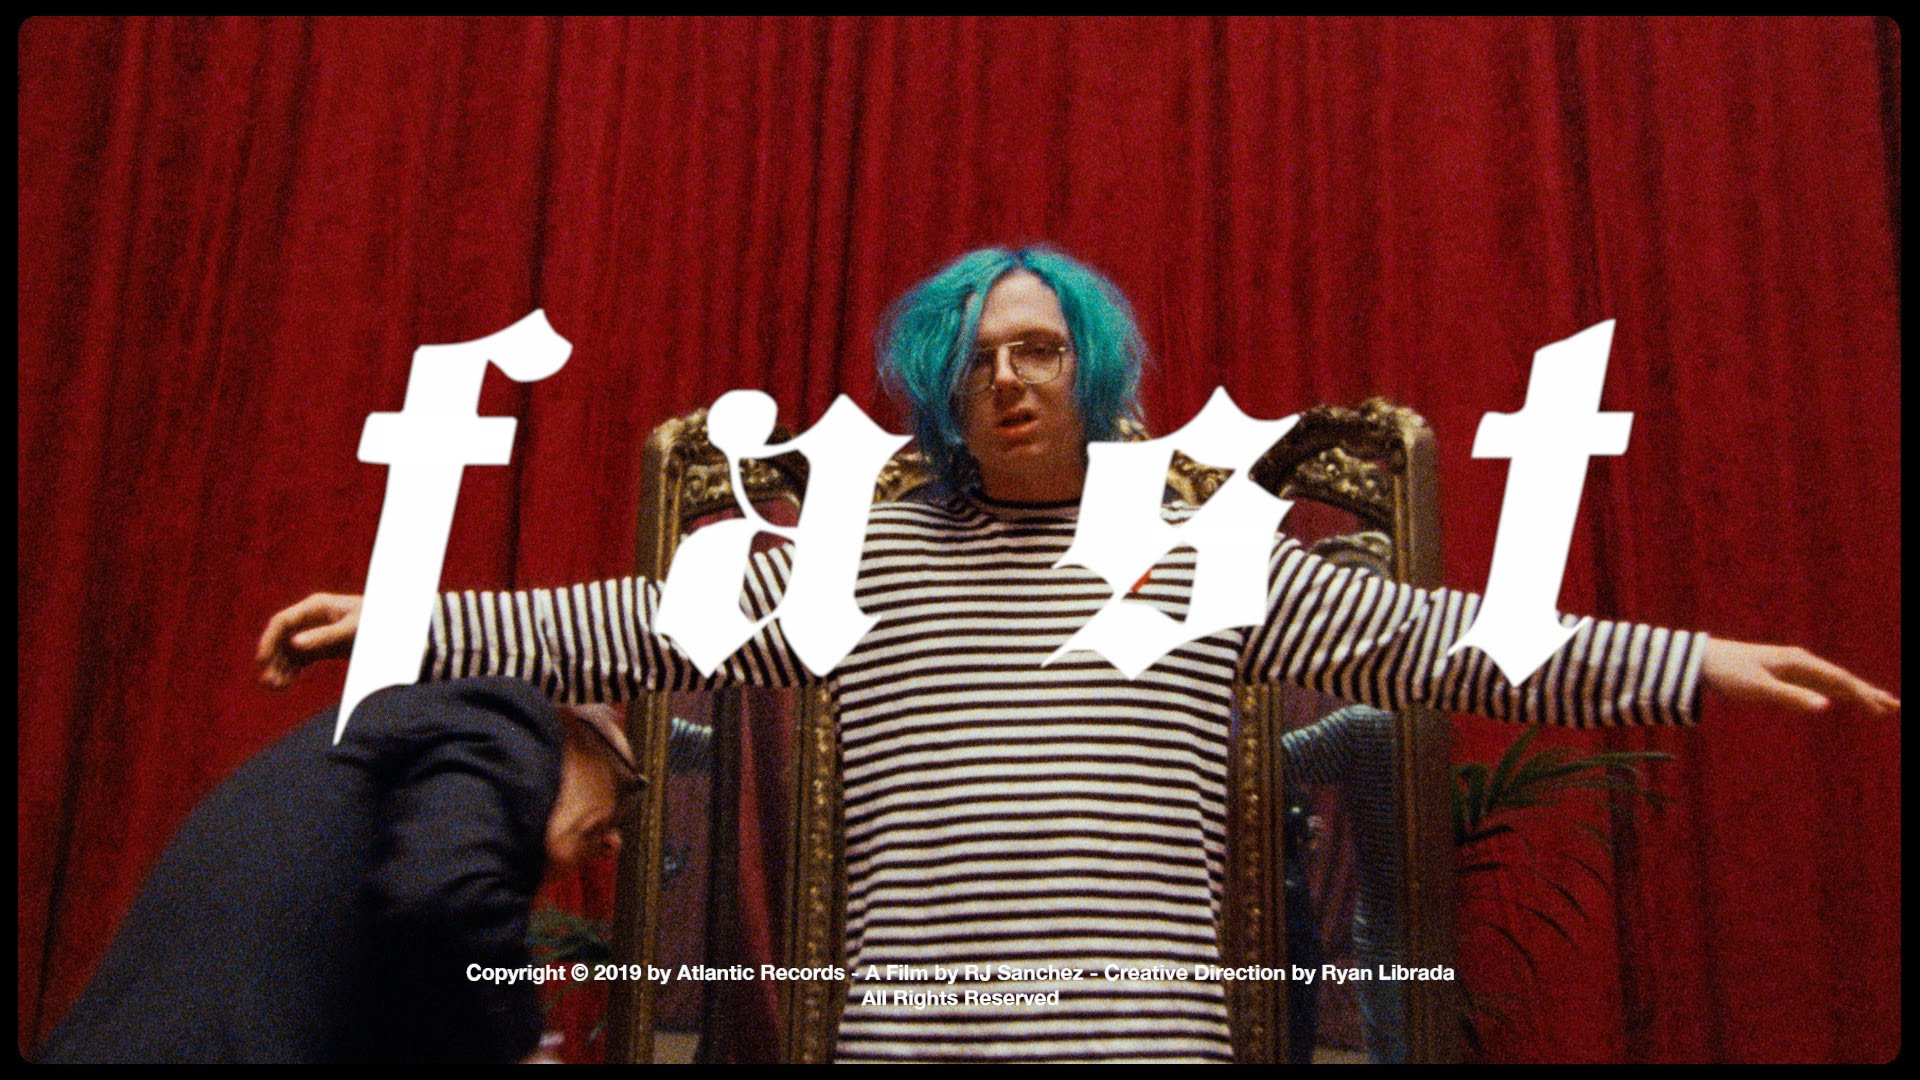 """Premiere: Sueco the Child and His Crew Live the """"Fast"""" Life in New Video"""